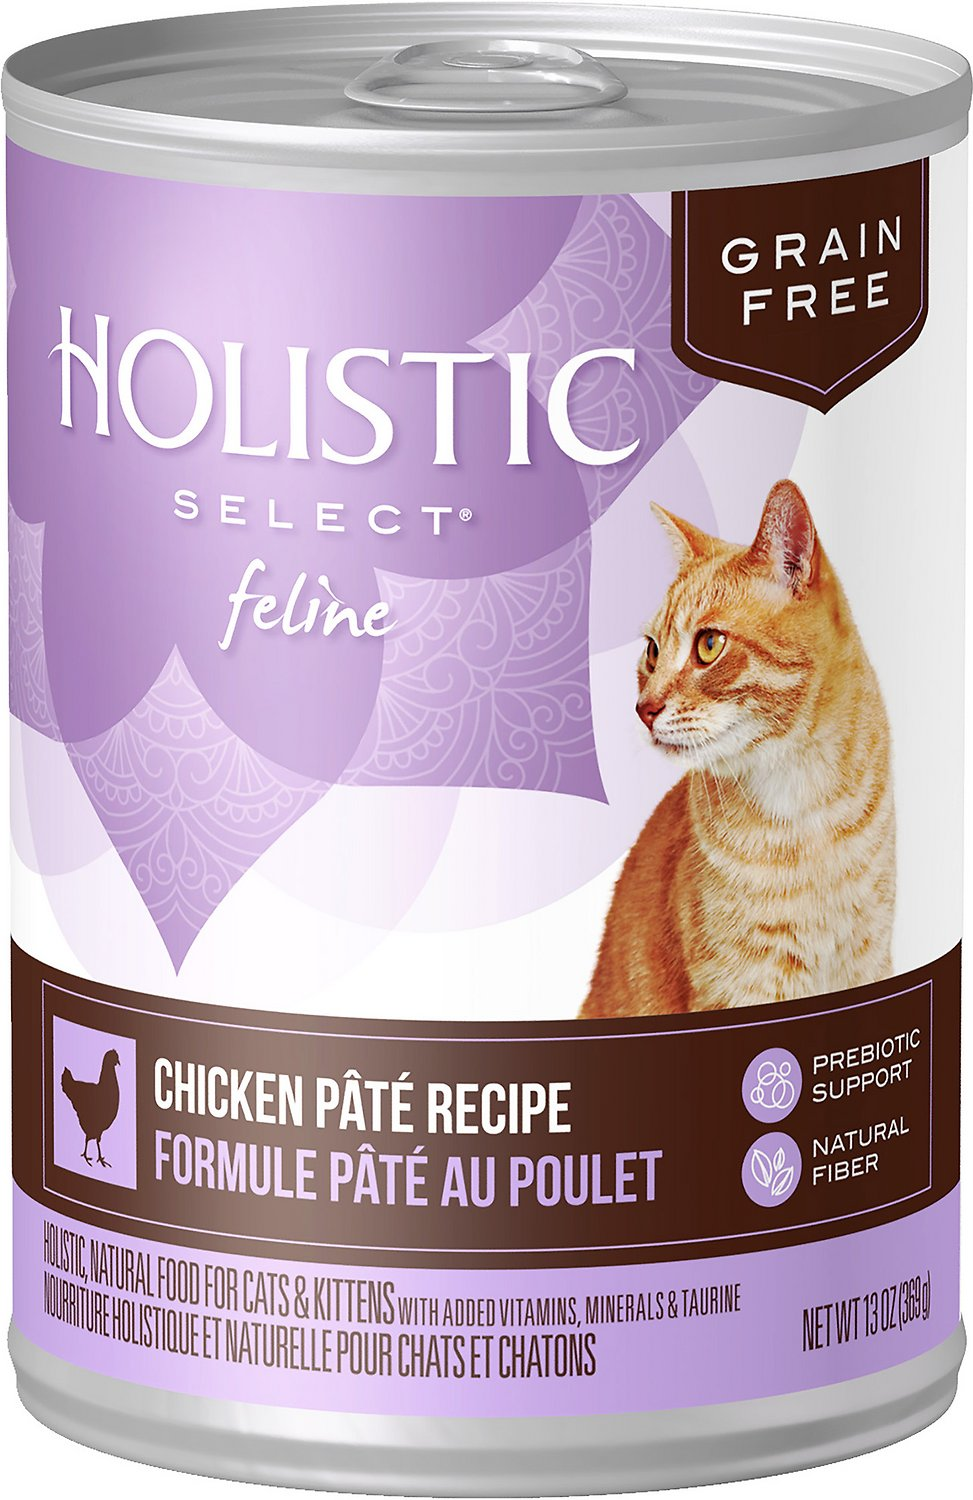 Holistic Select Chicken Pate Recipe Grain-Free Canned Cat & Kitten Food